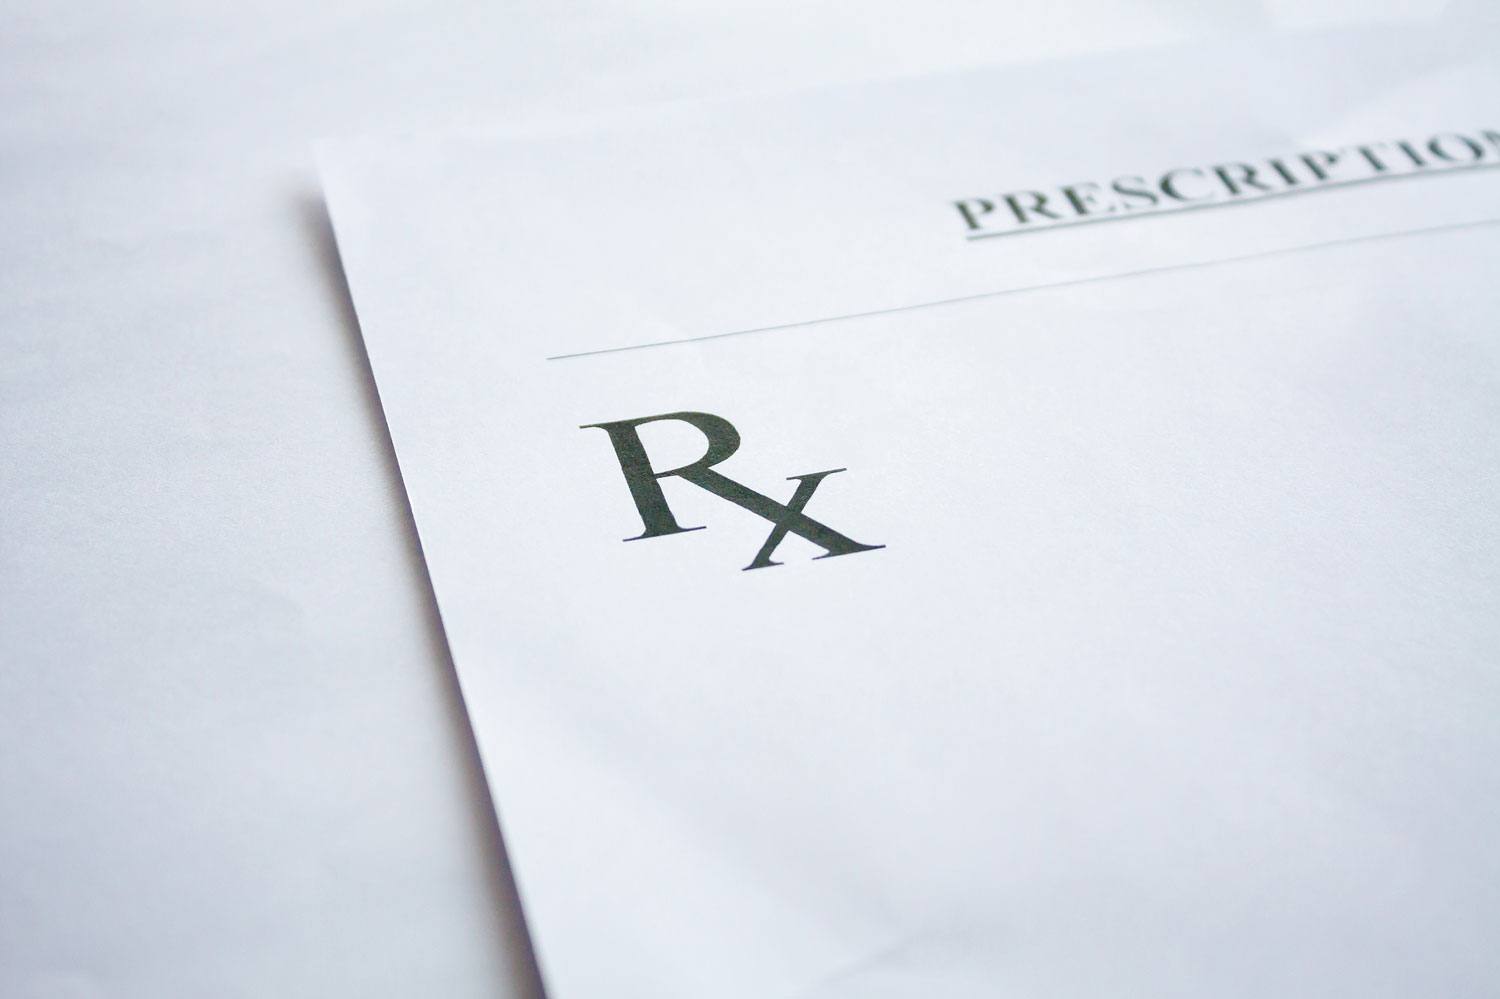 Prescription – What to do when your boss doesn't like you | Brandon